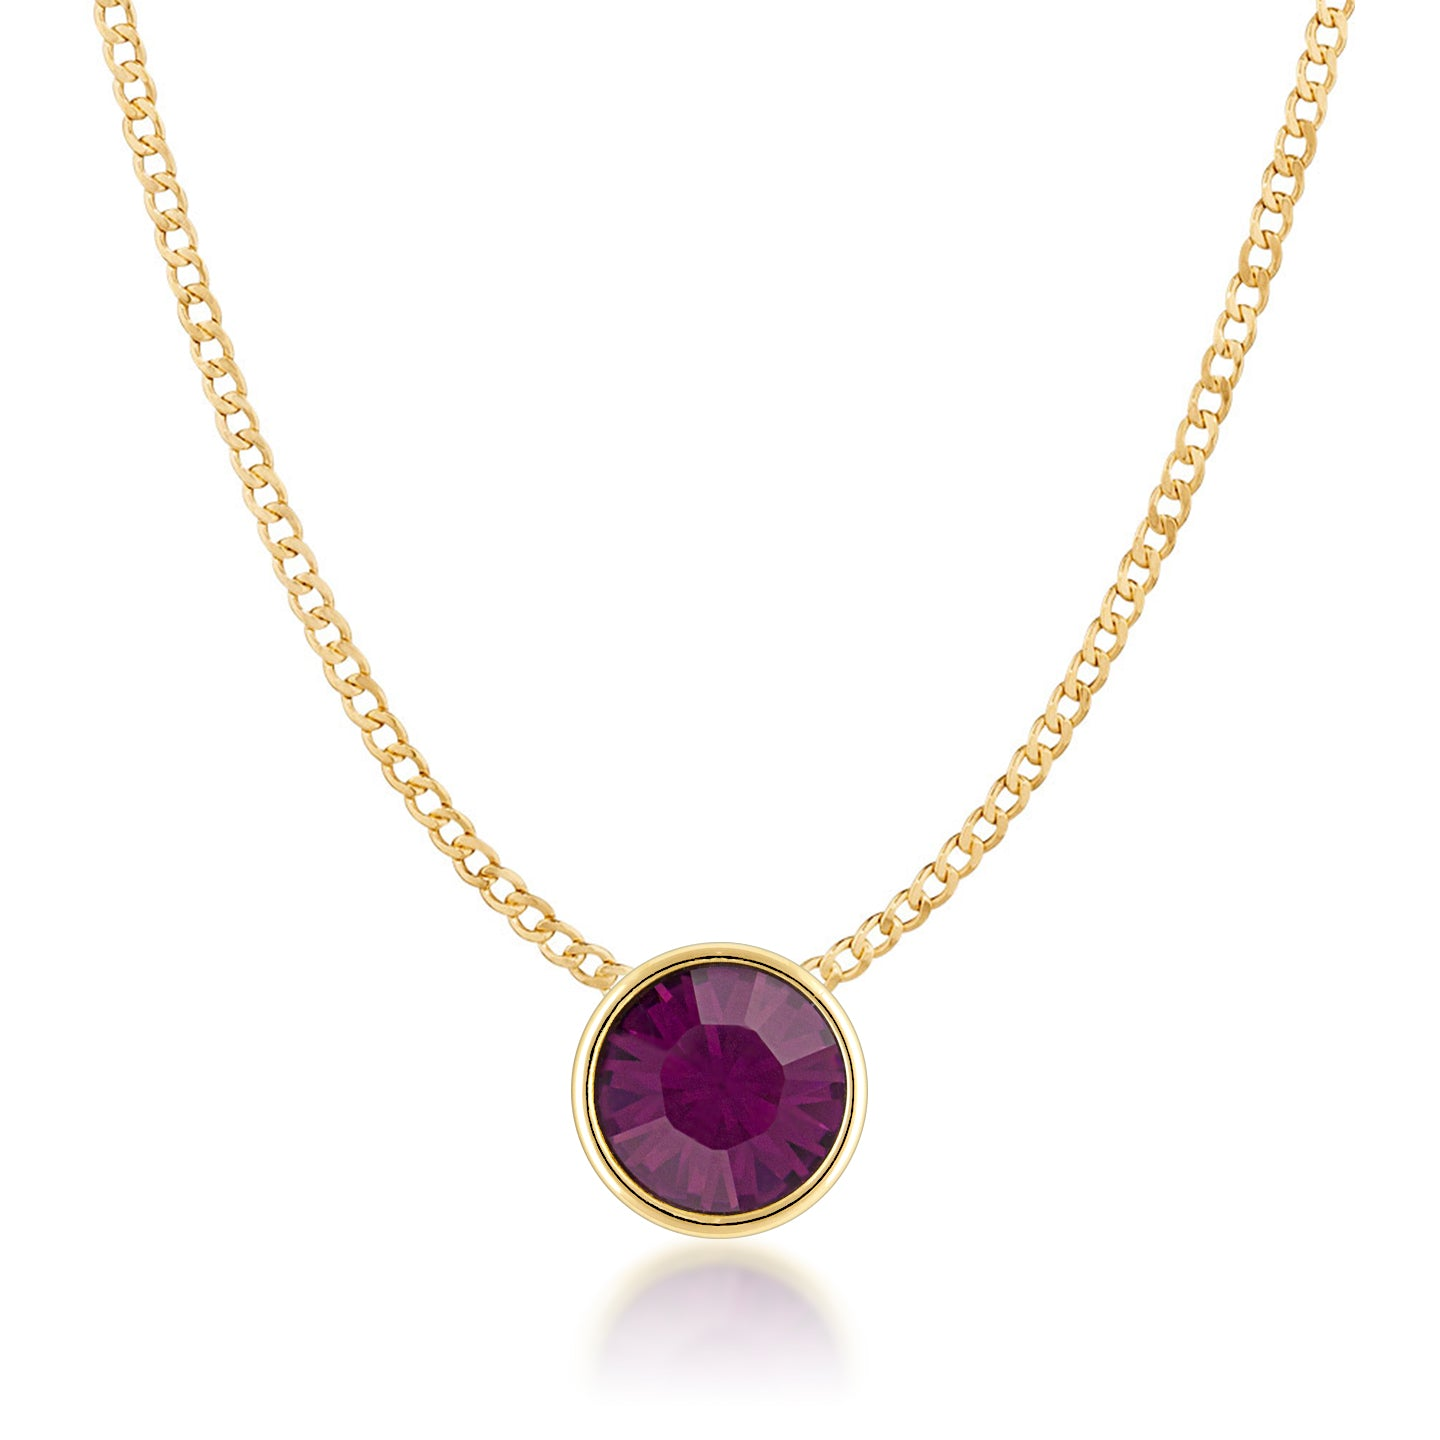 Harley Small Pendant Necklace with Purple Amethyst Round Crystals from Swarovski Gold Plated - Ed Heart